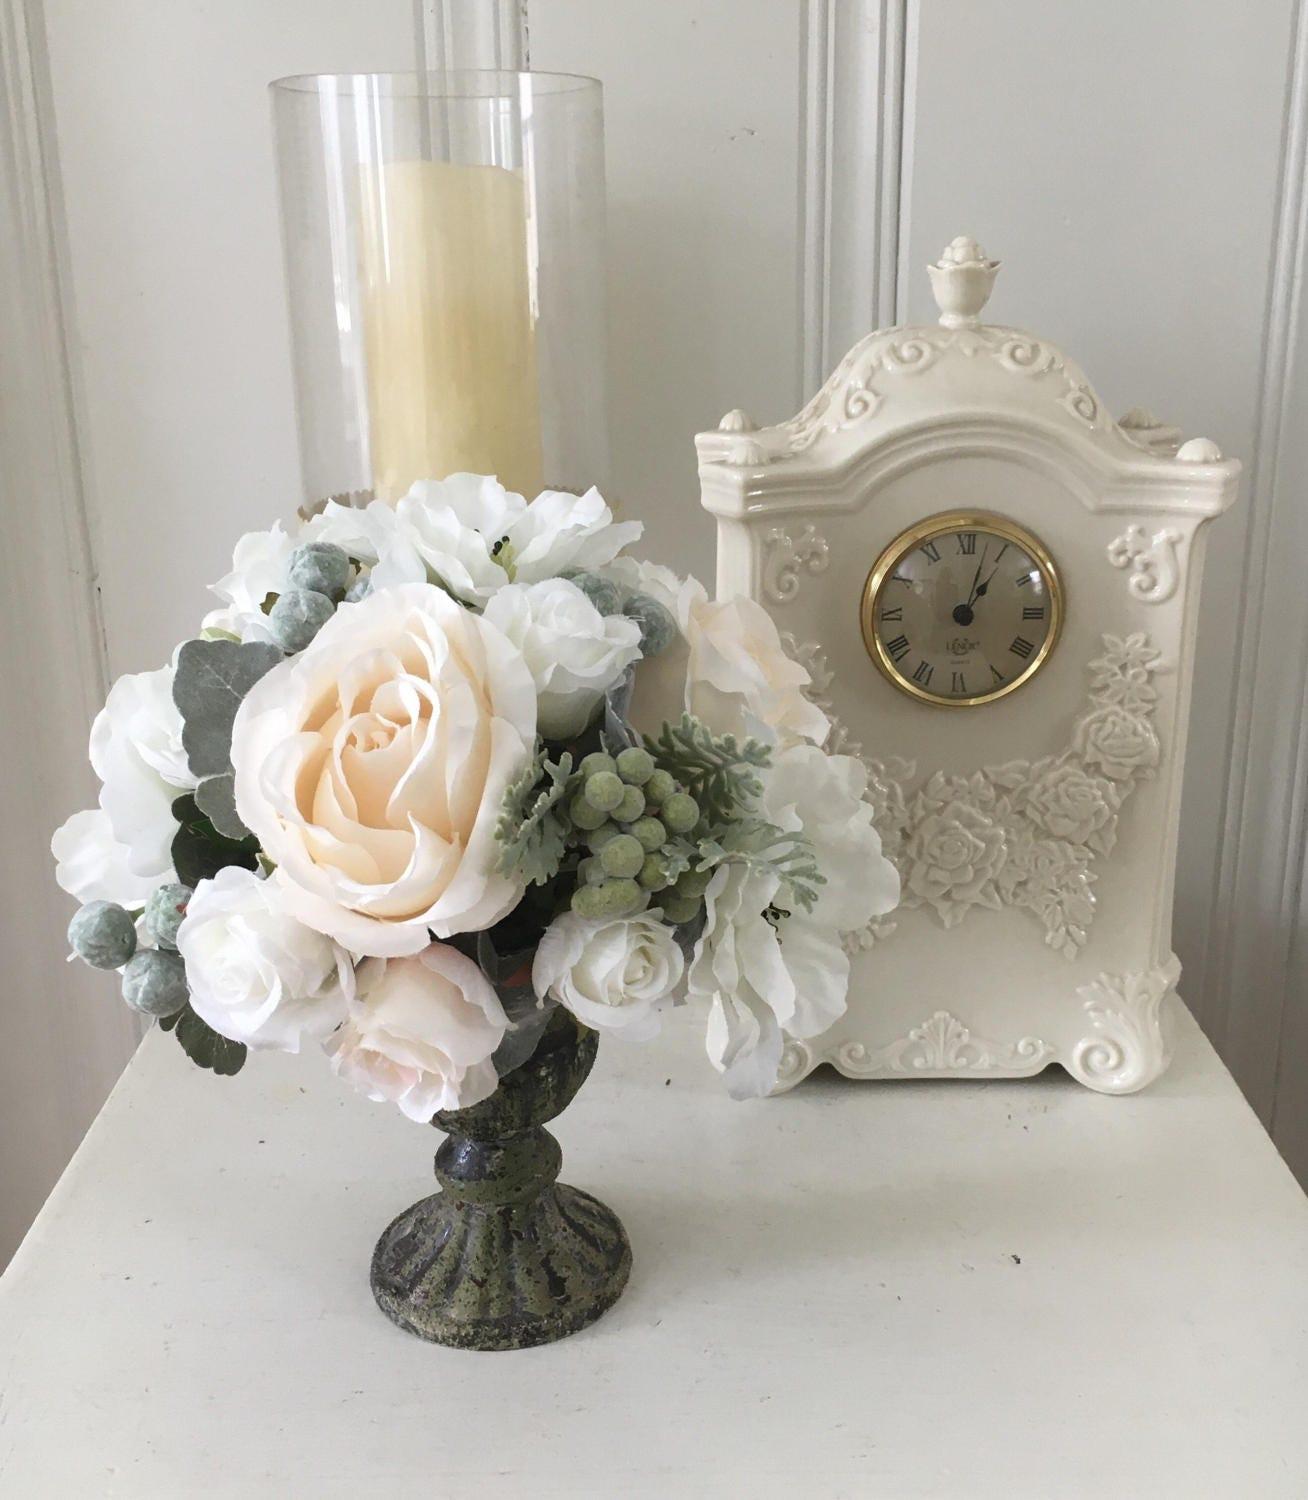 Floral Home Decor Shabby Chic Flowers Cottage Chic Decor